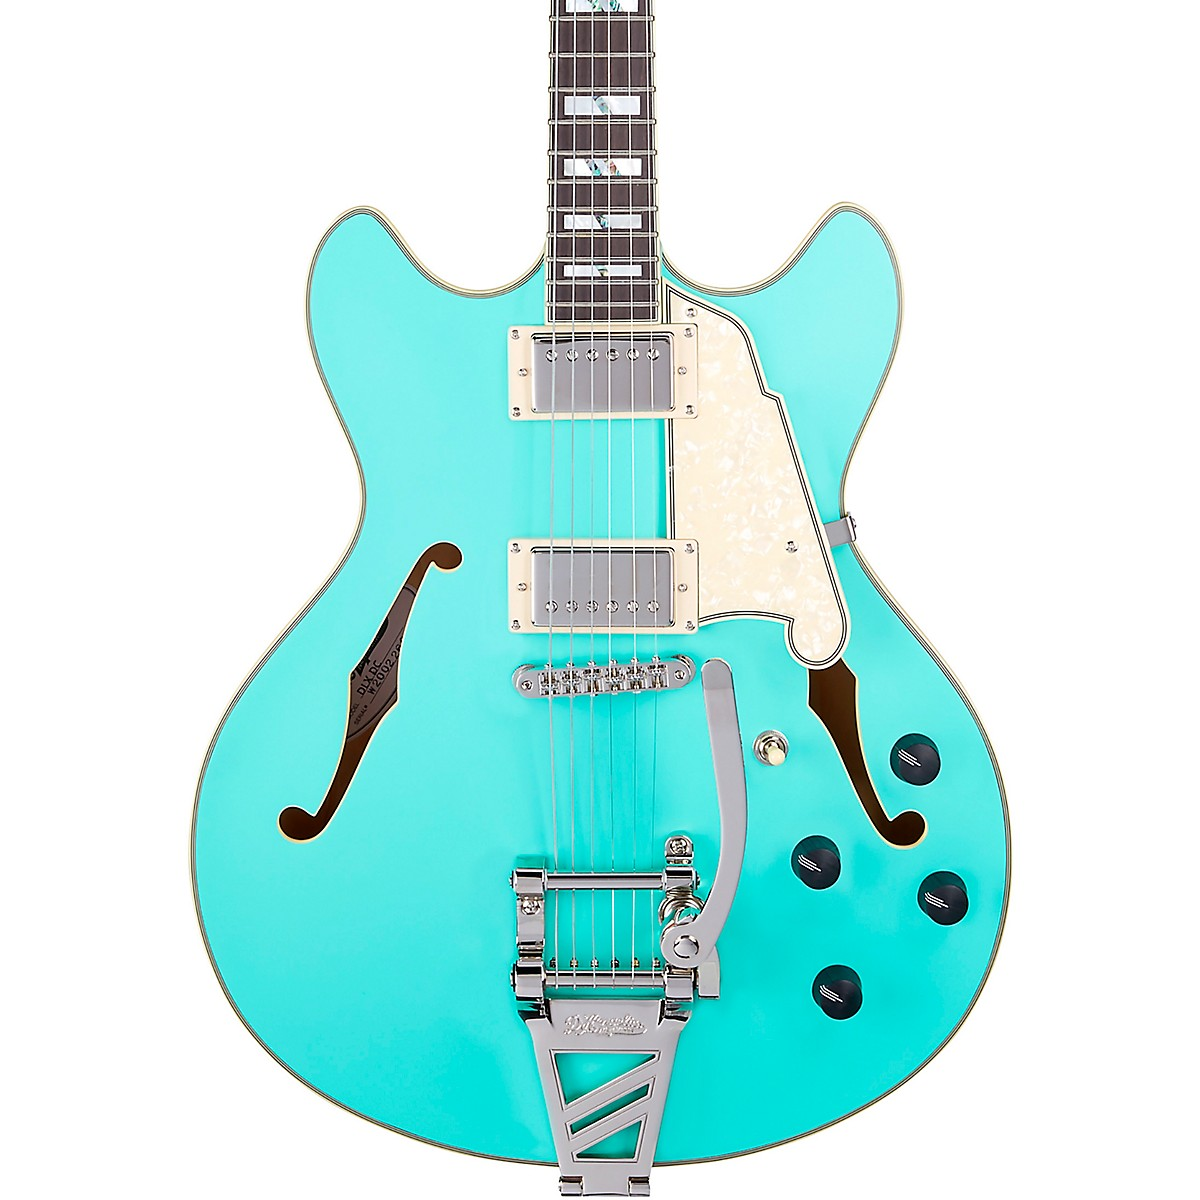 D'Angelico Deluxe DC Semi-Hollow Electric Guitar with D'Angelico Shield Tremolo